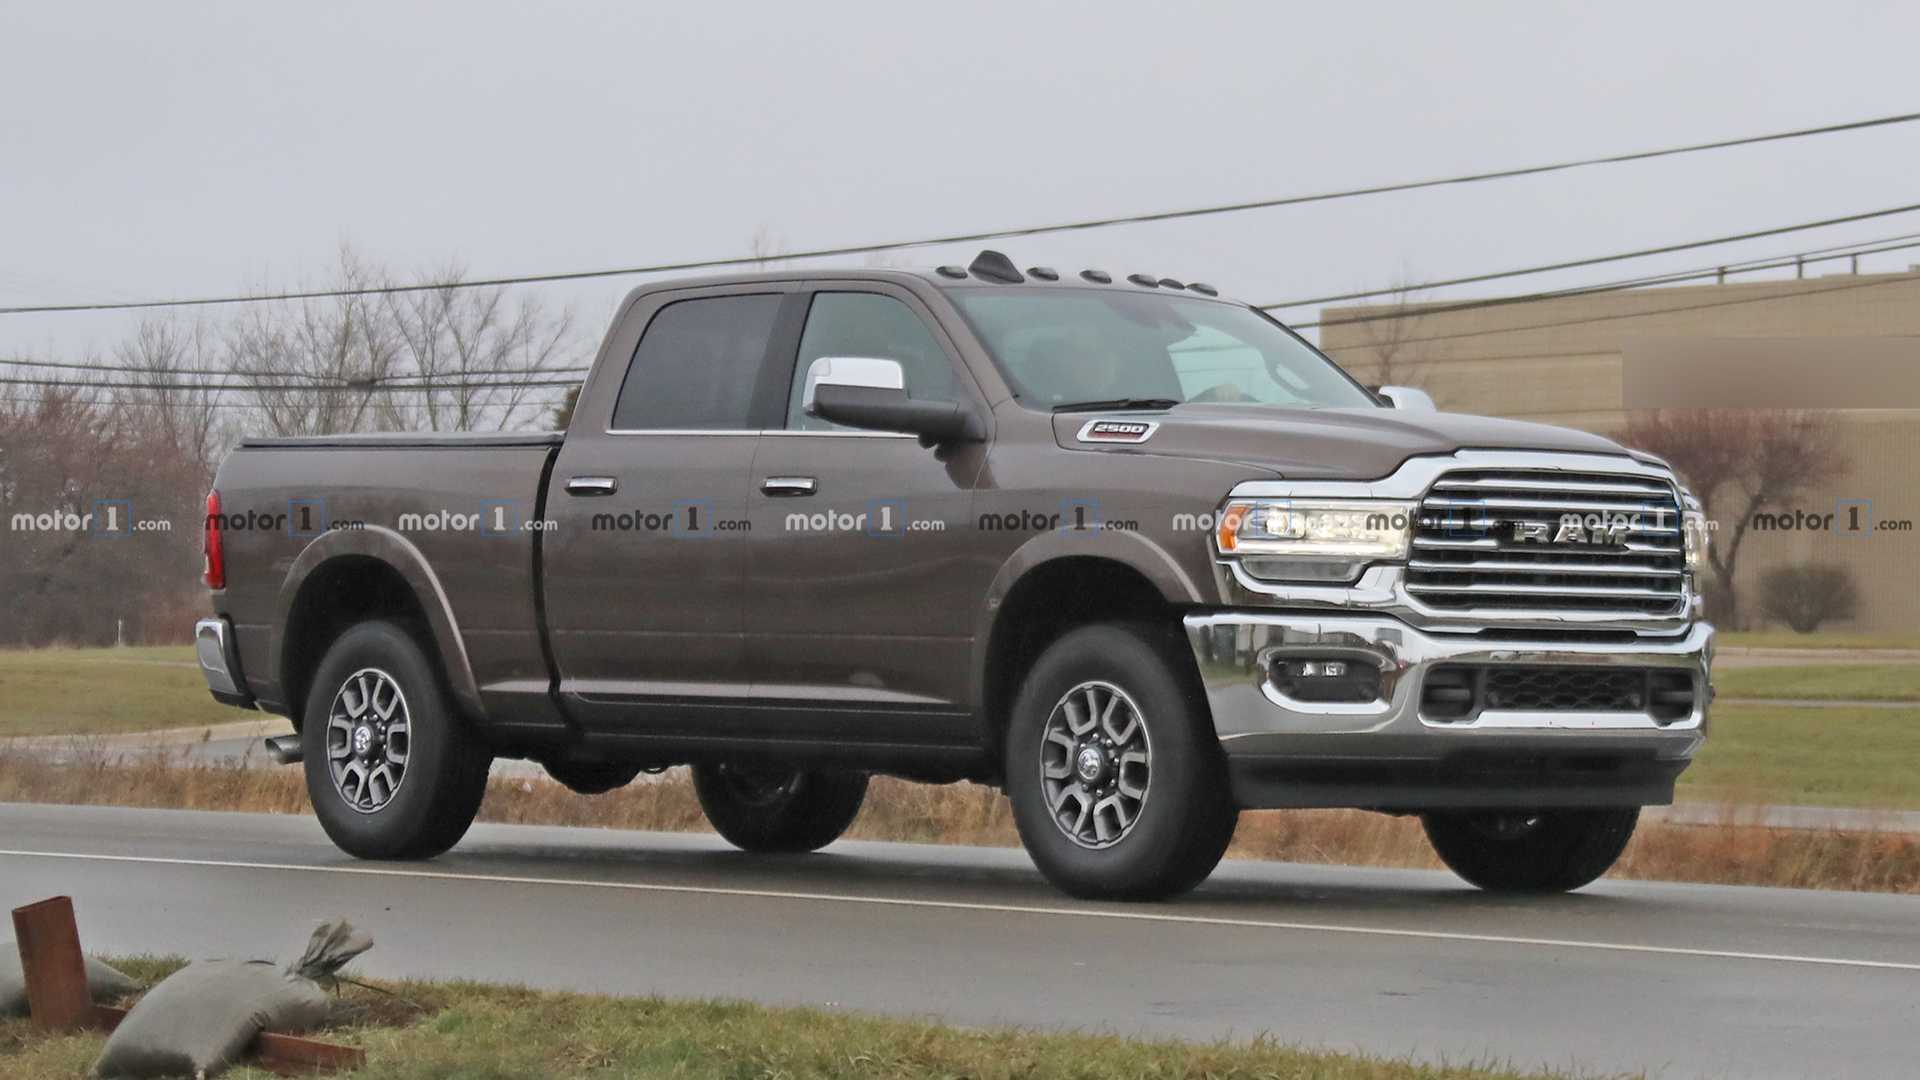 43 New Dodge Ram 3500 Diesel 2020 Concept